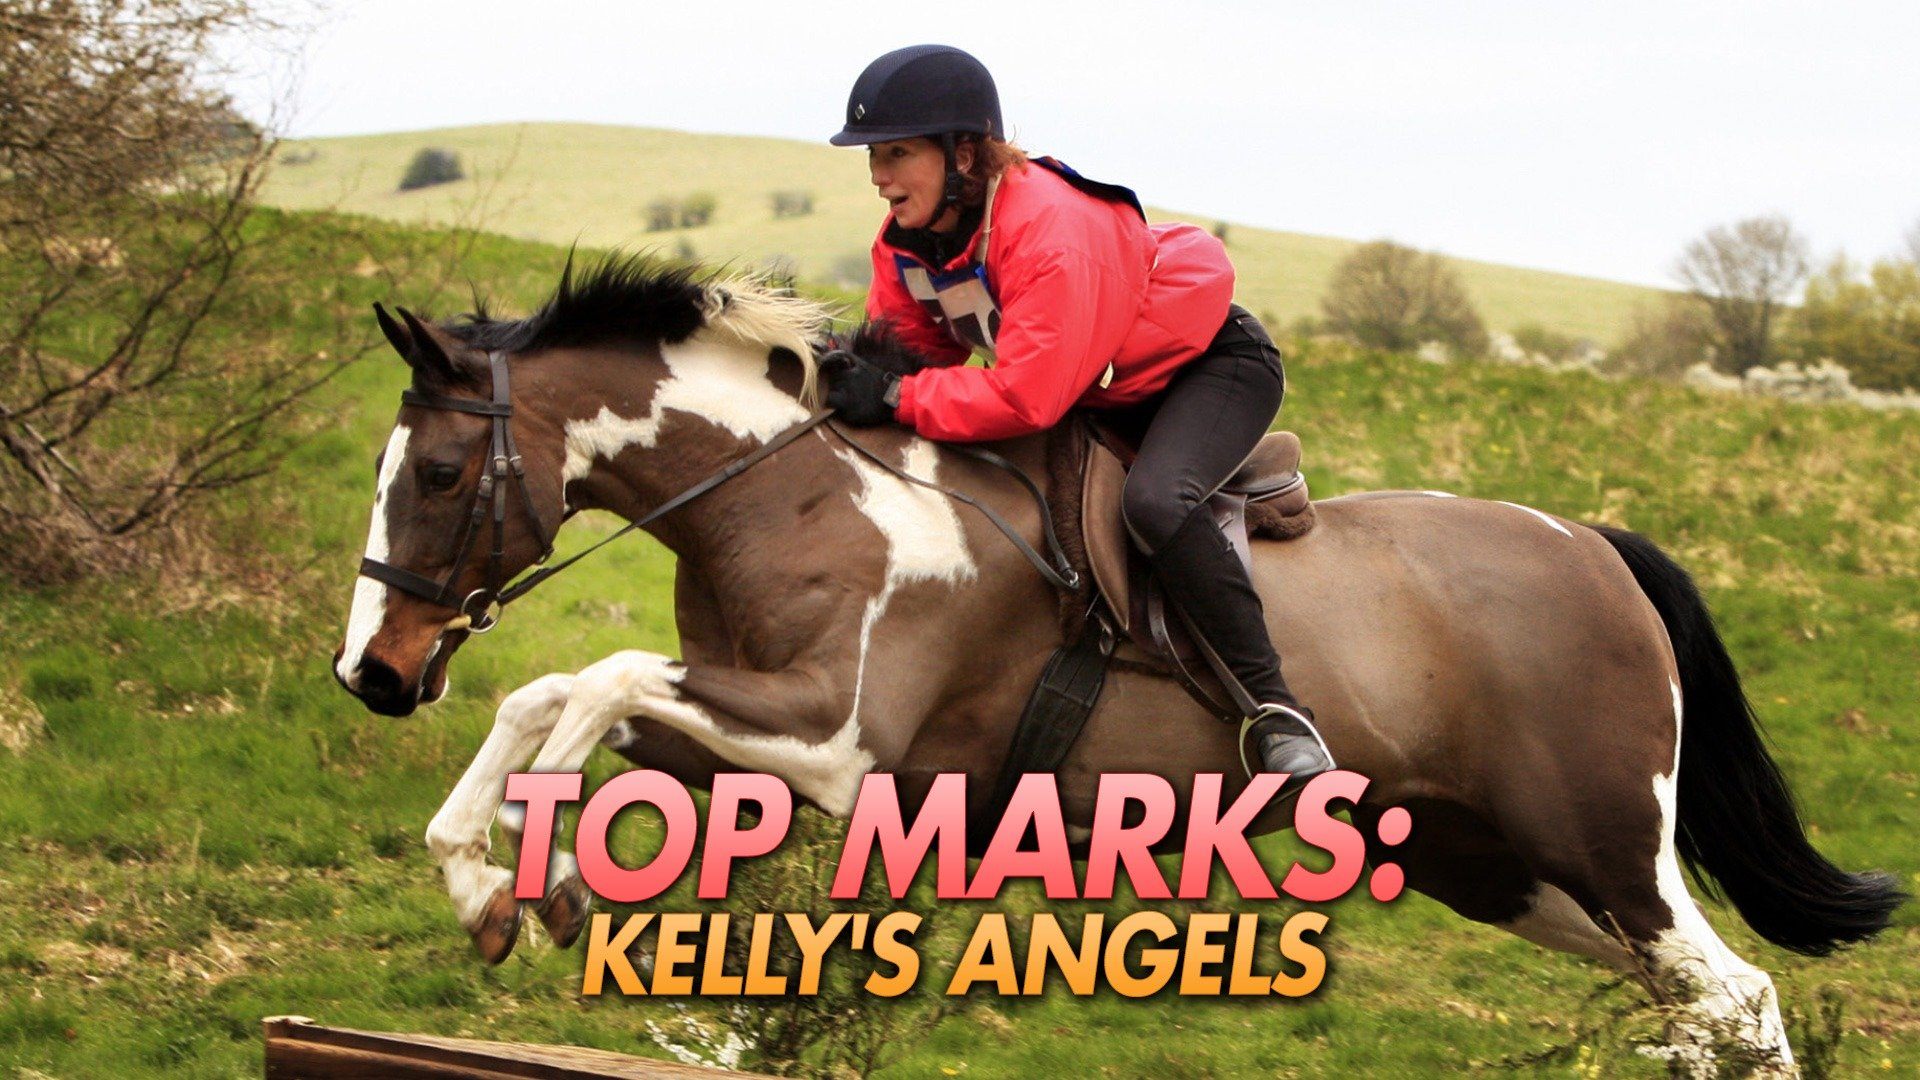 Top Marks: Kelly's Angels